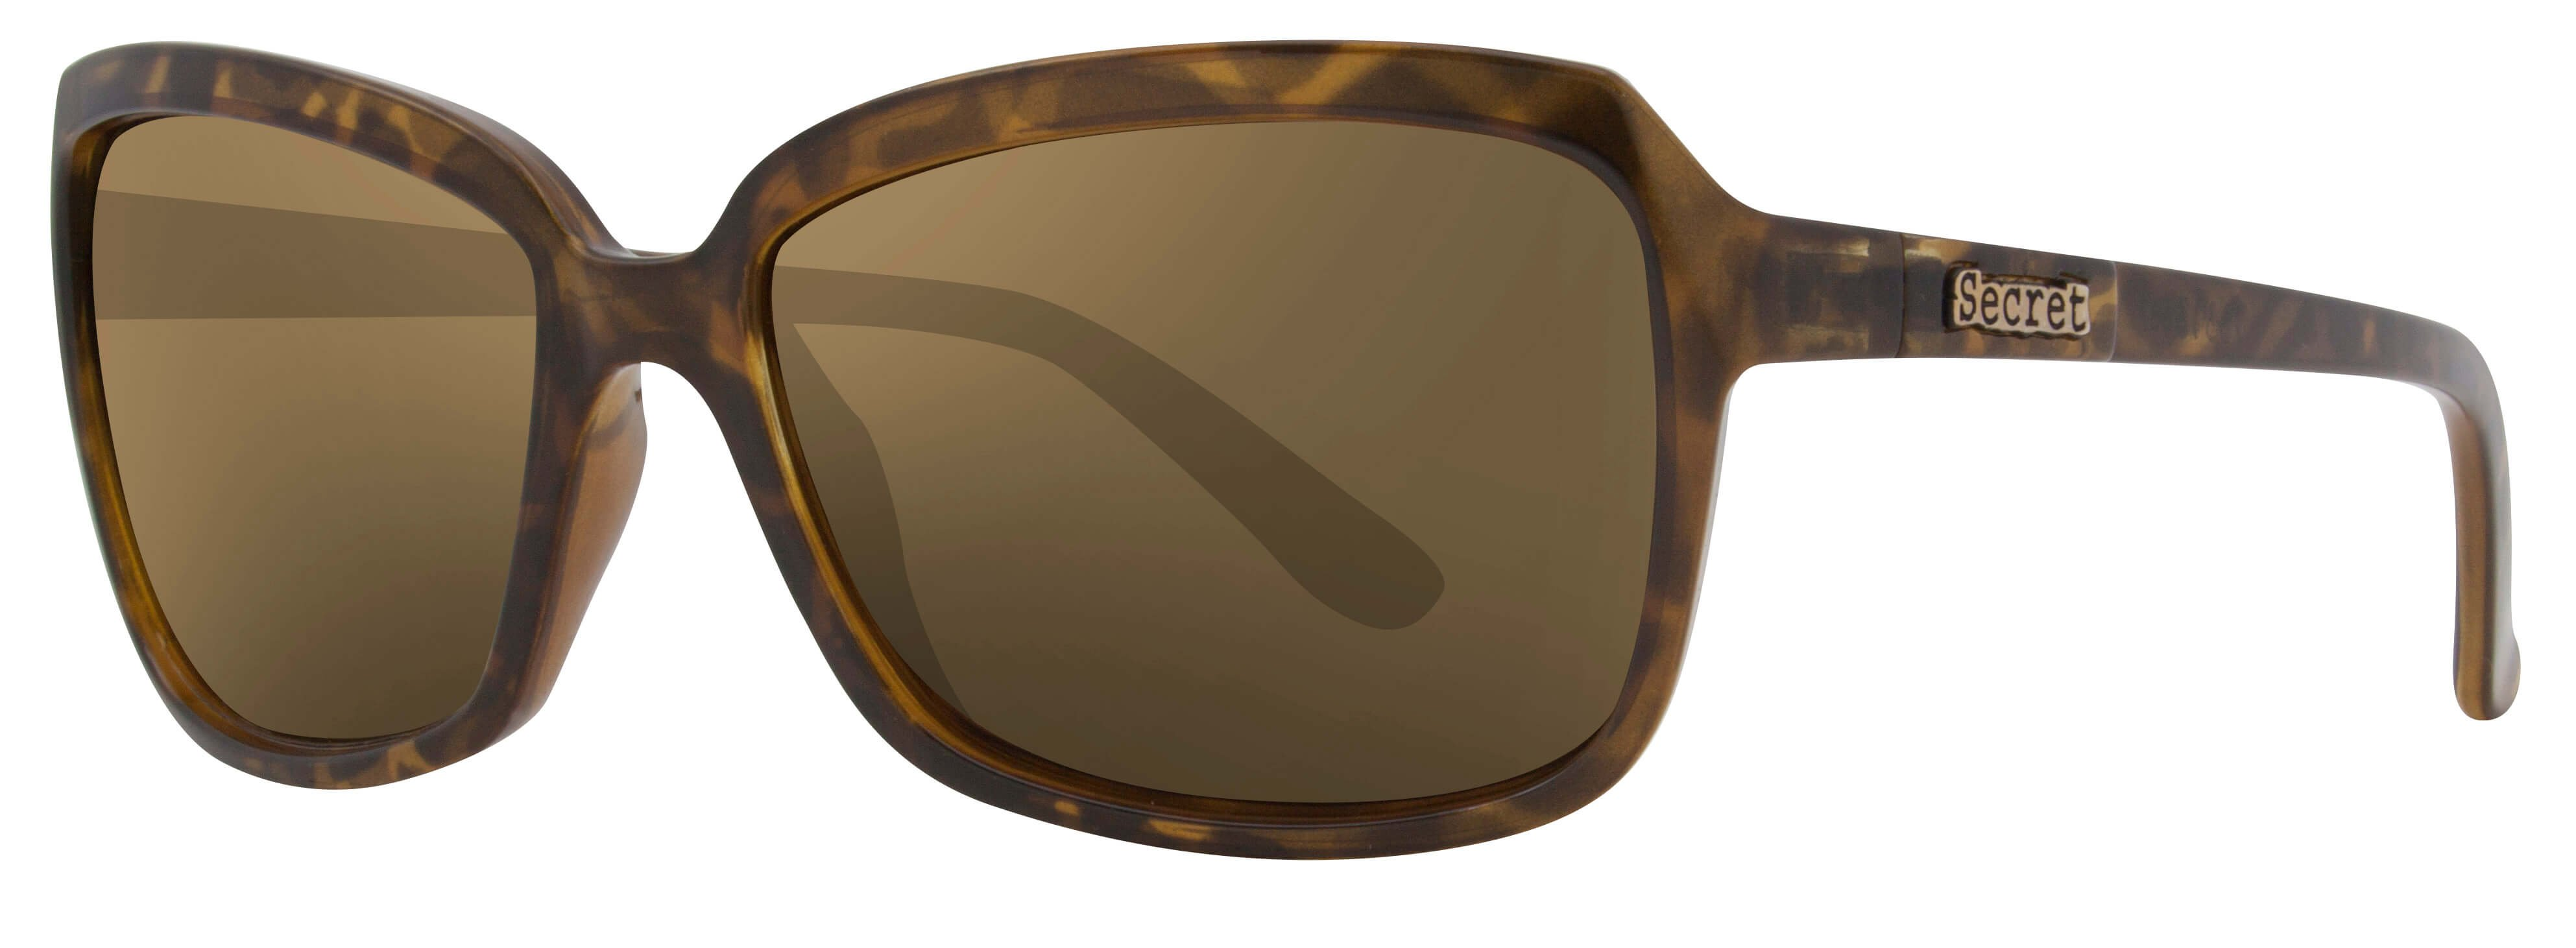 SECRET PETIT HAVANA TURTLE / POLARIZED BROWN